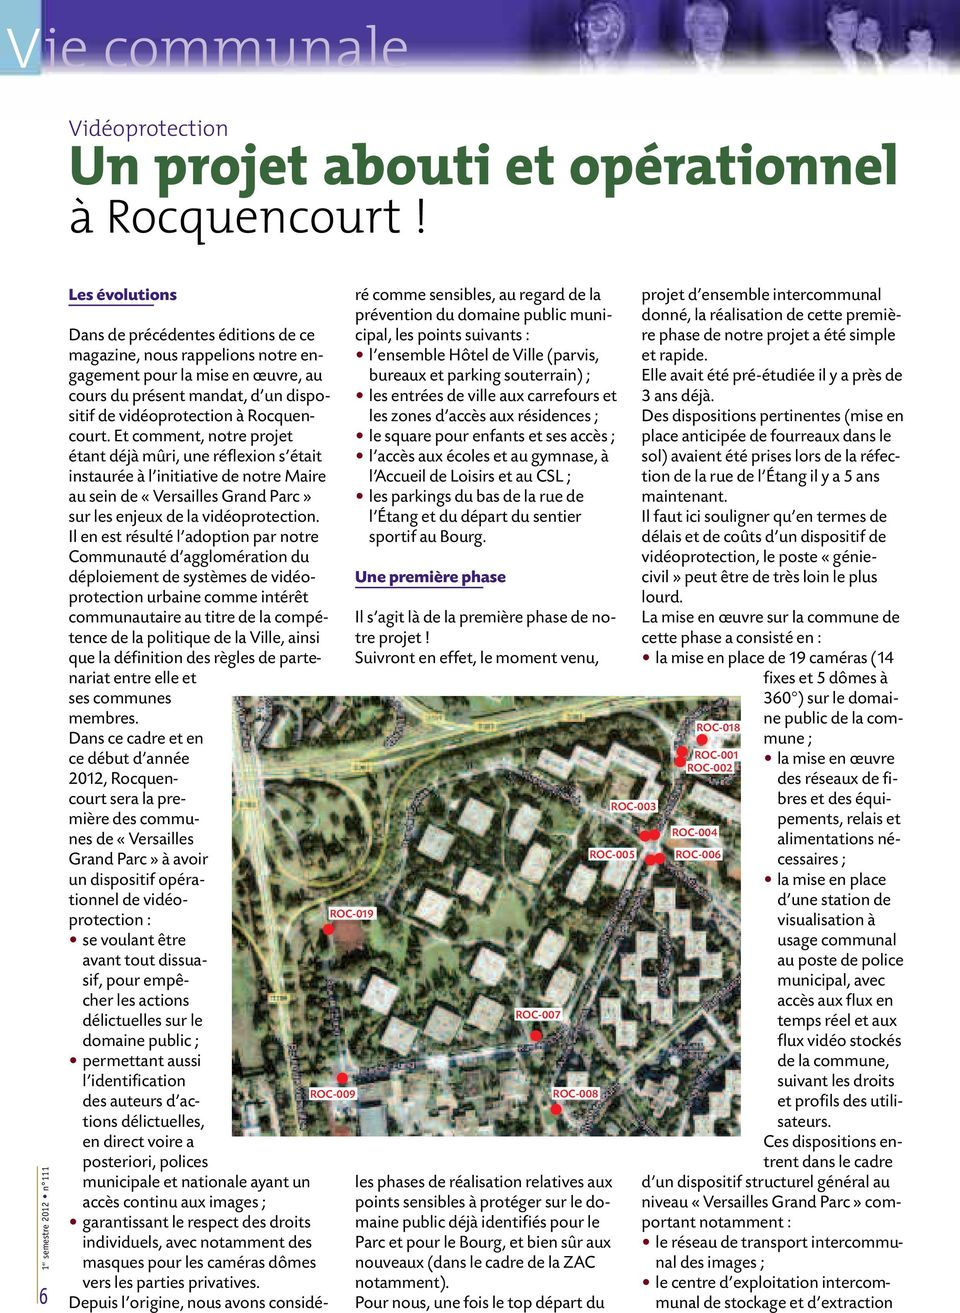 dispositif de vidéoprotection à Rocquencourt.